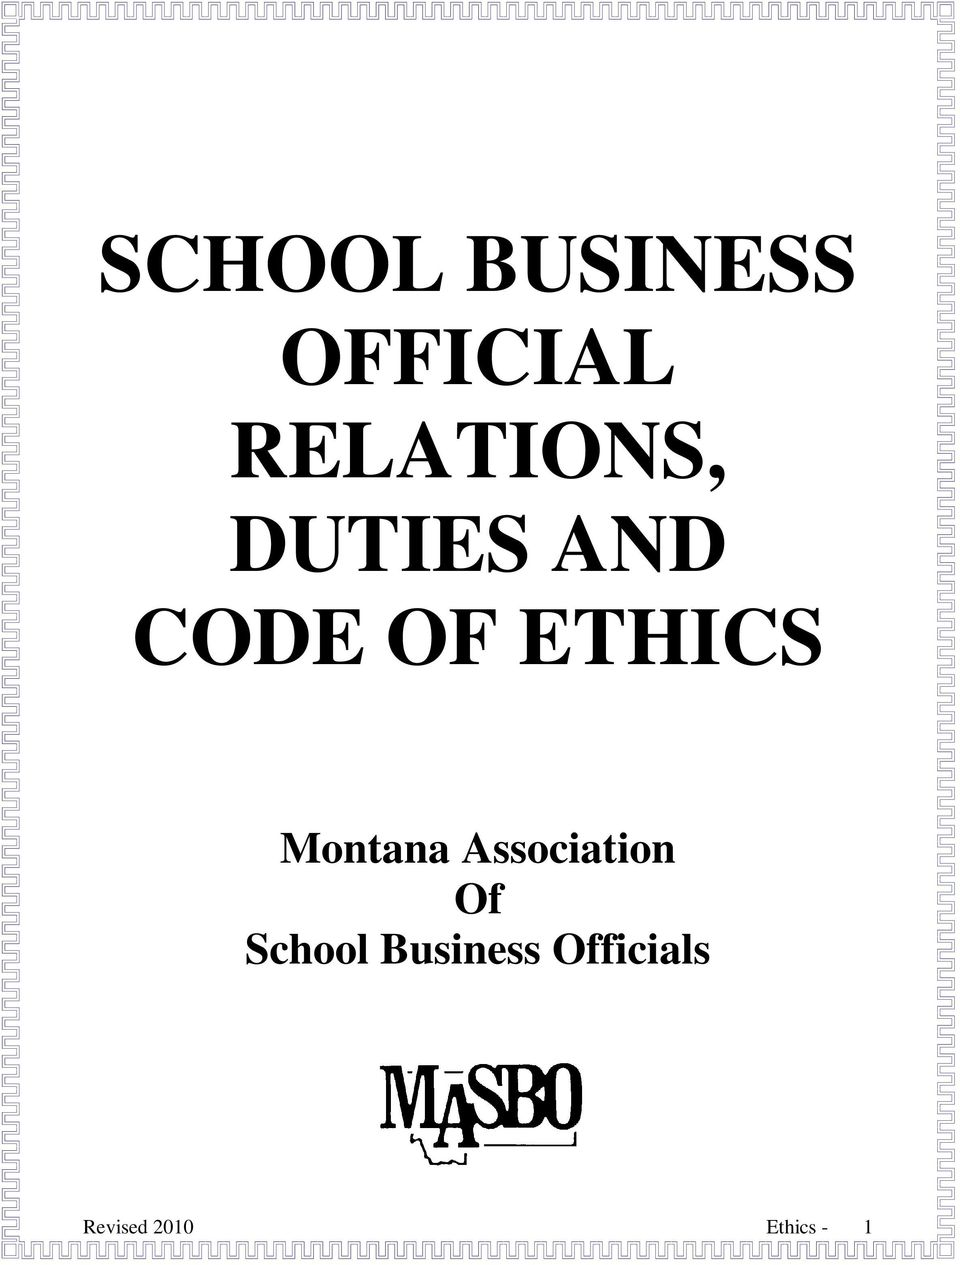 ETHICS Montana Association Of